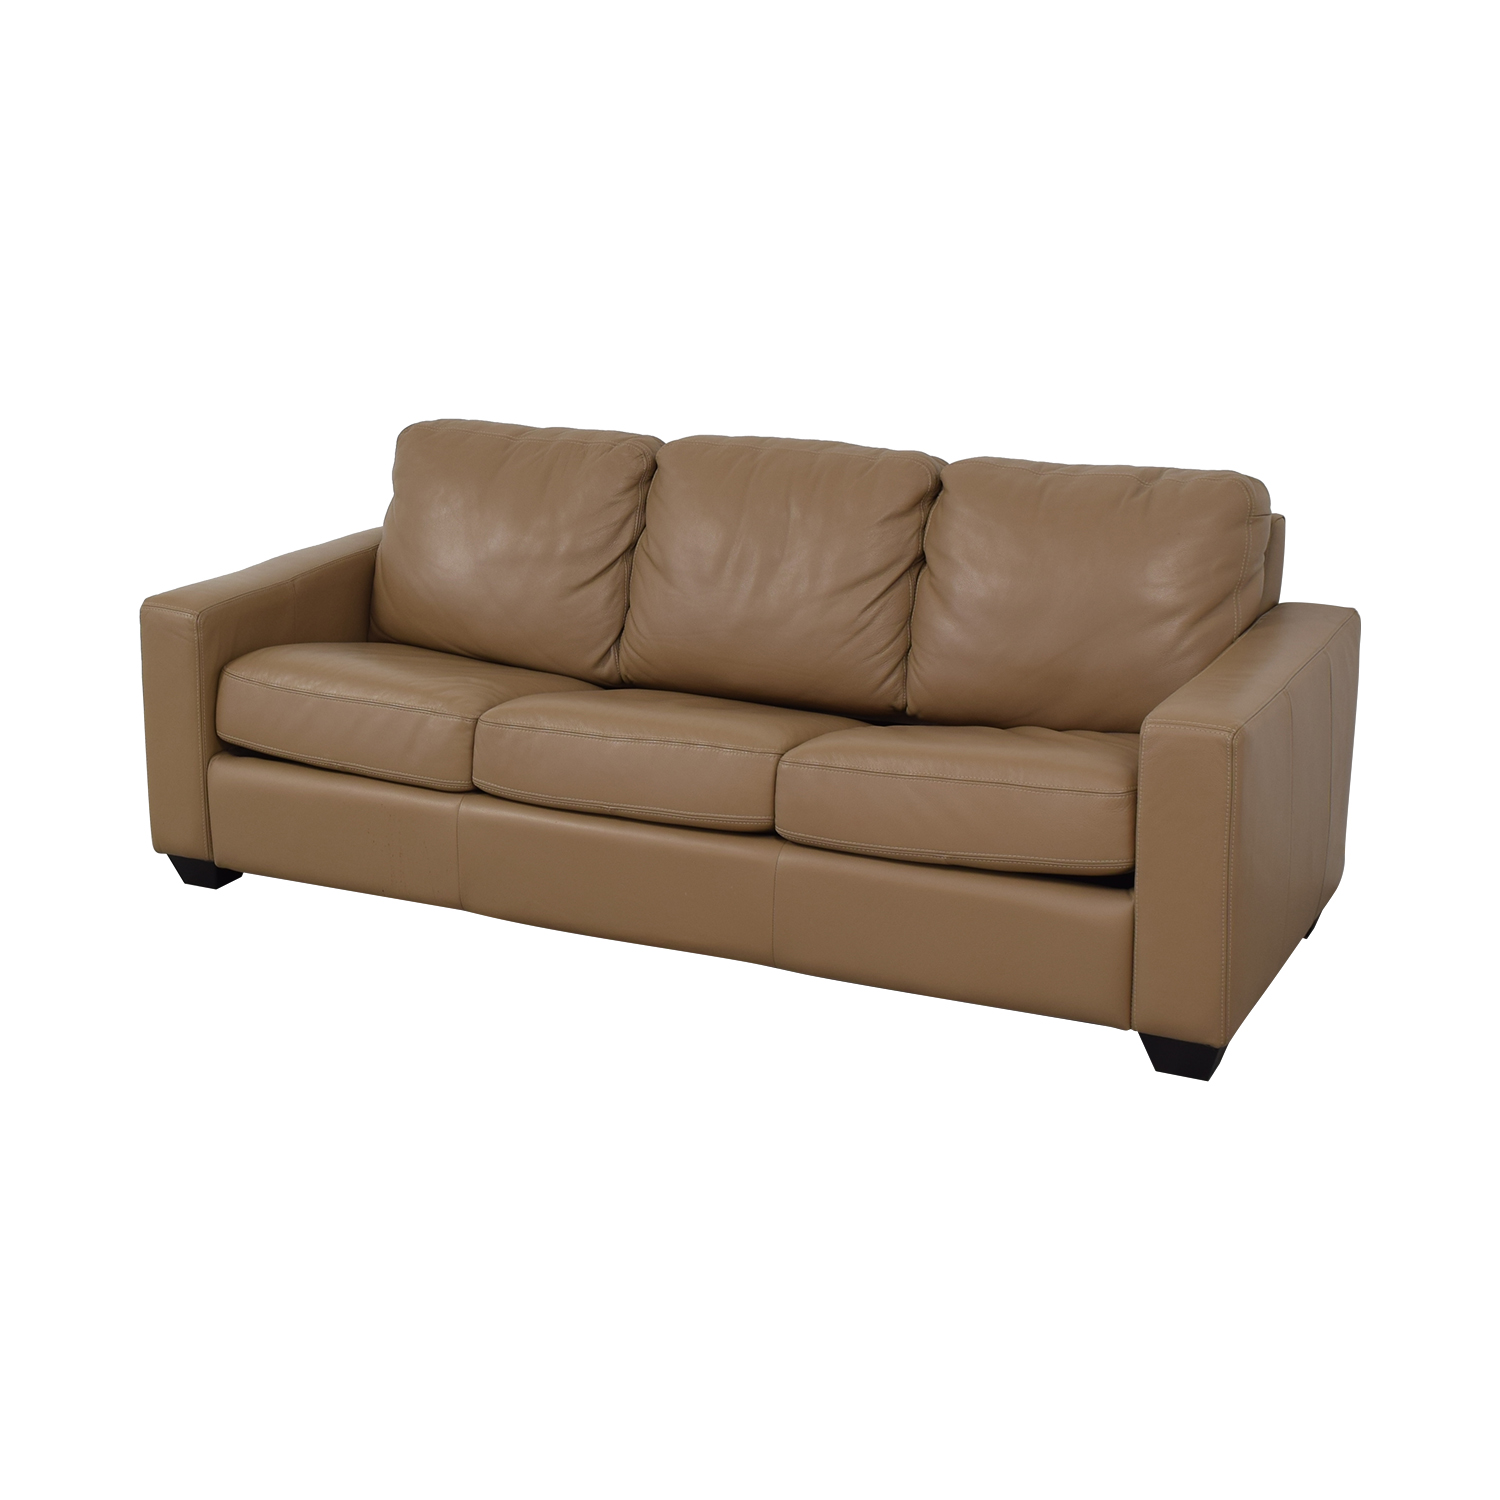 JC Penney JC Penney Leather Sleeper Sofa price